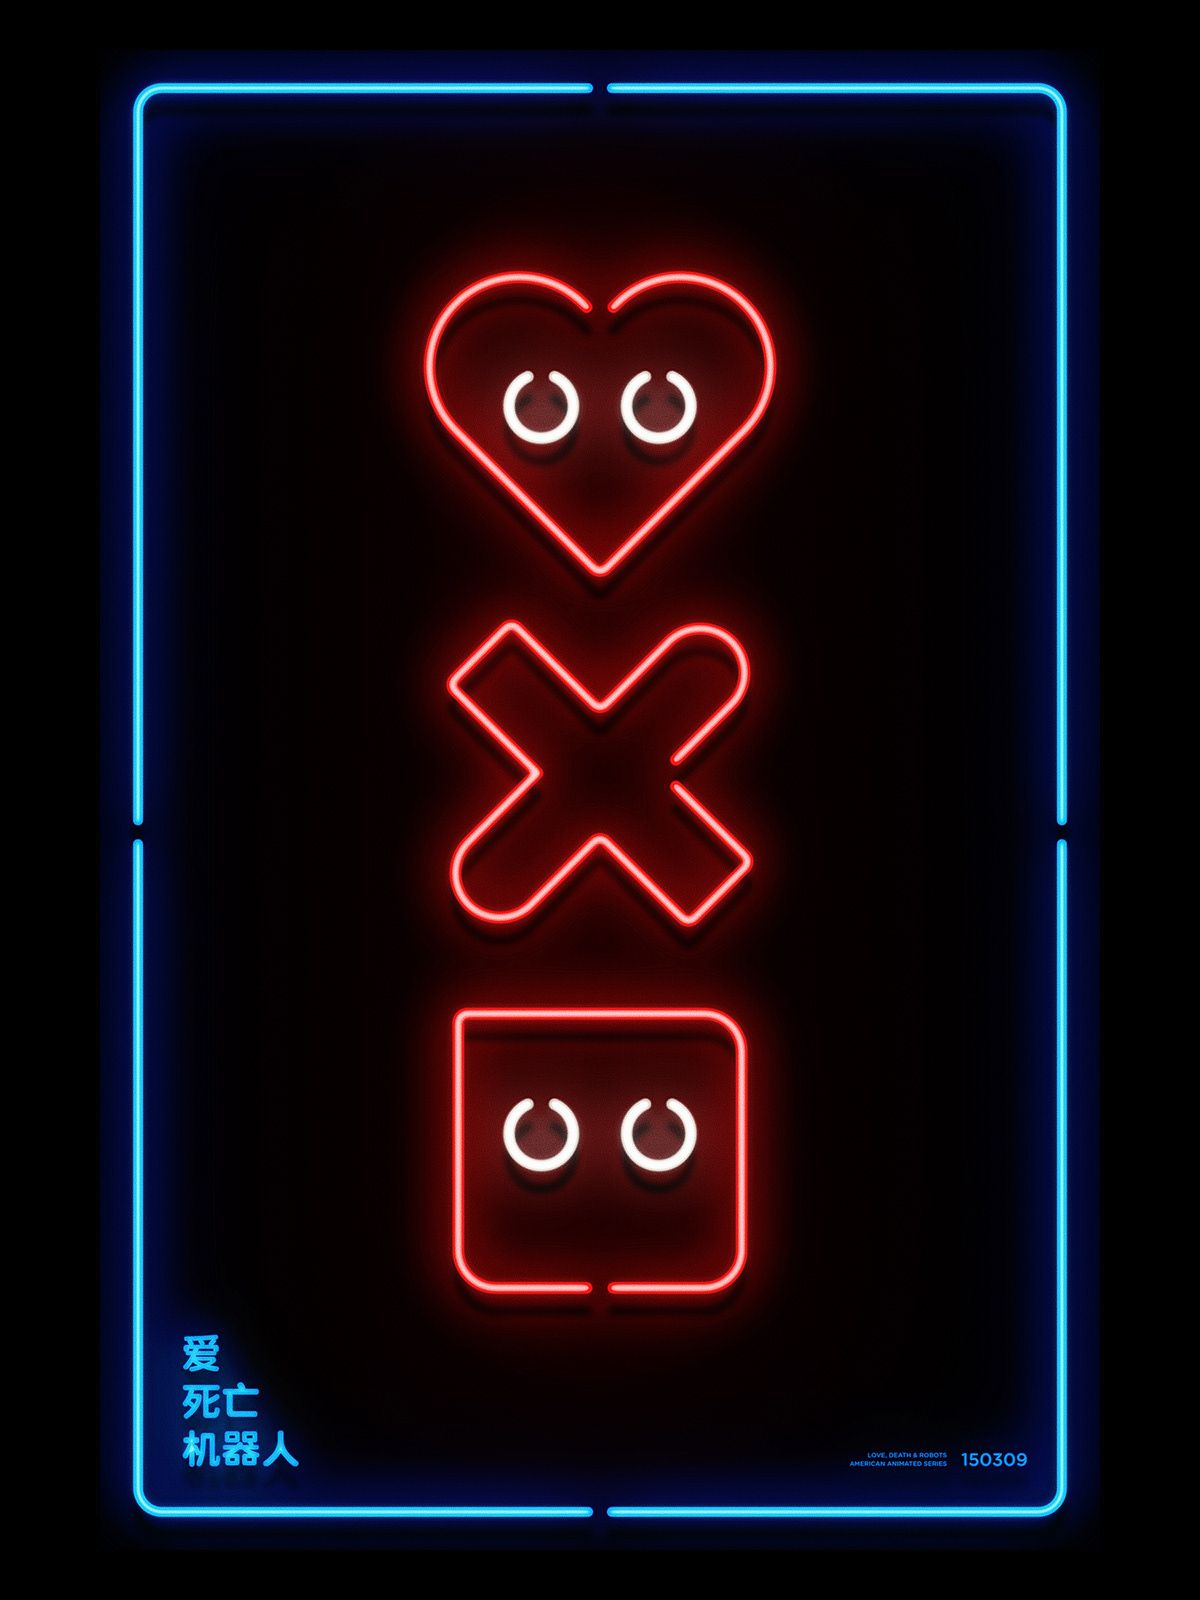 Robot Wallpaper Image By Aaron Mallett On Love Death And Robots